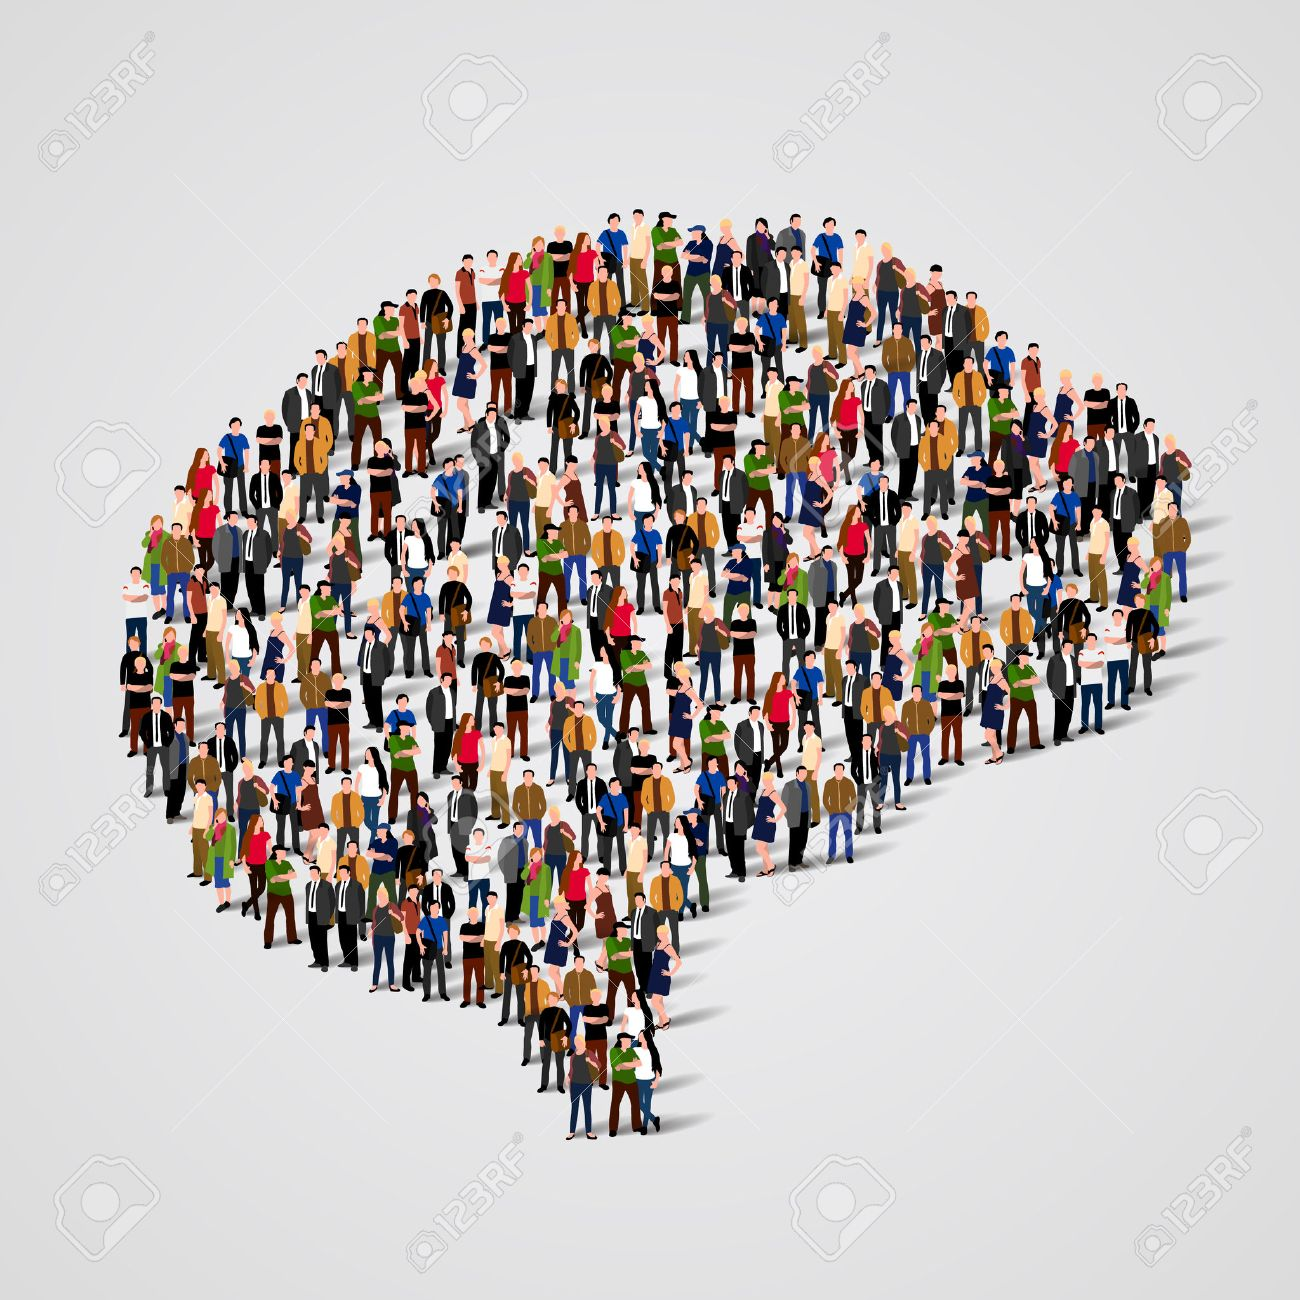 Large group of people in the shape of brain sign. Vector illustration Standard-Bild - 46955214